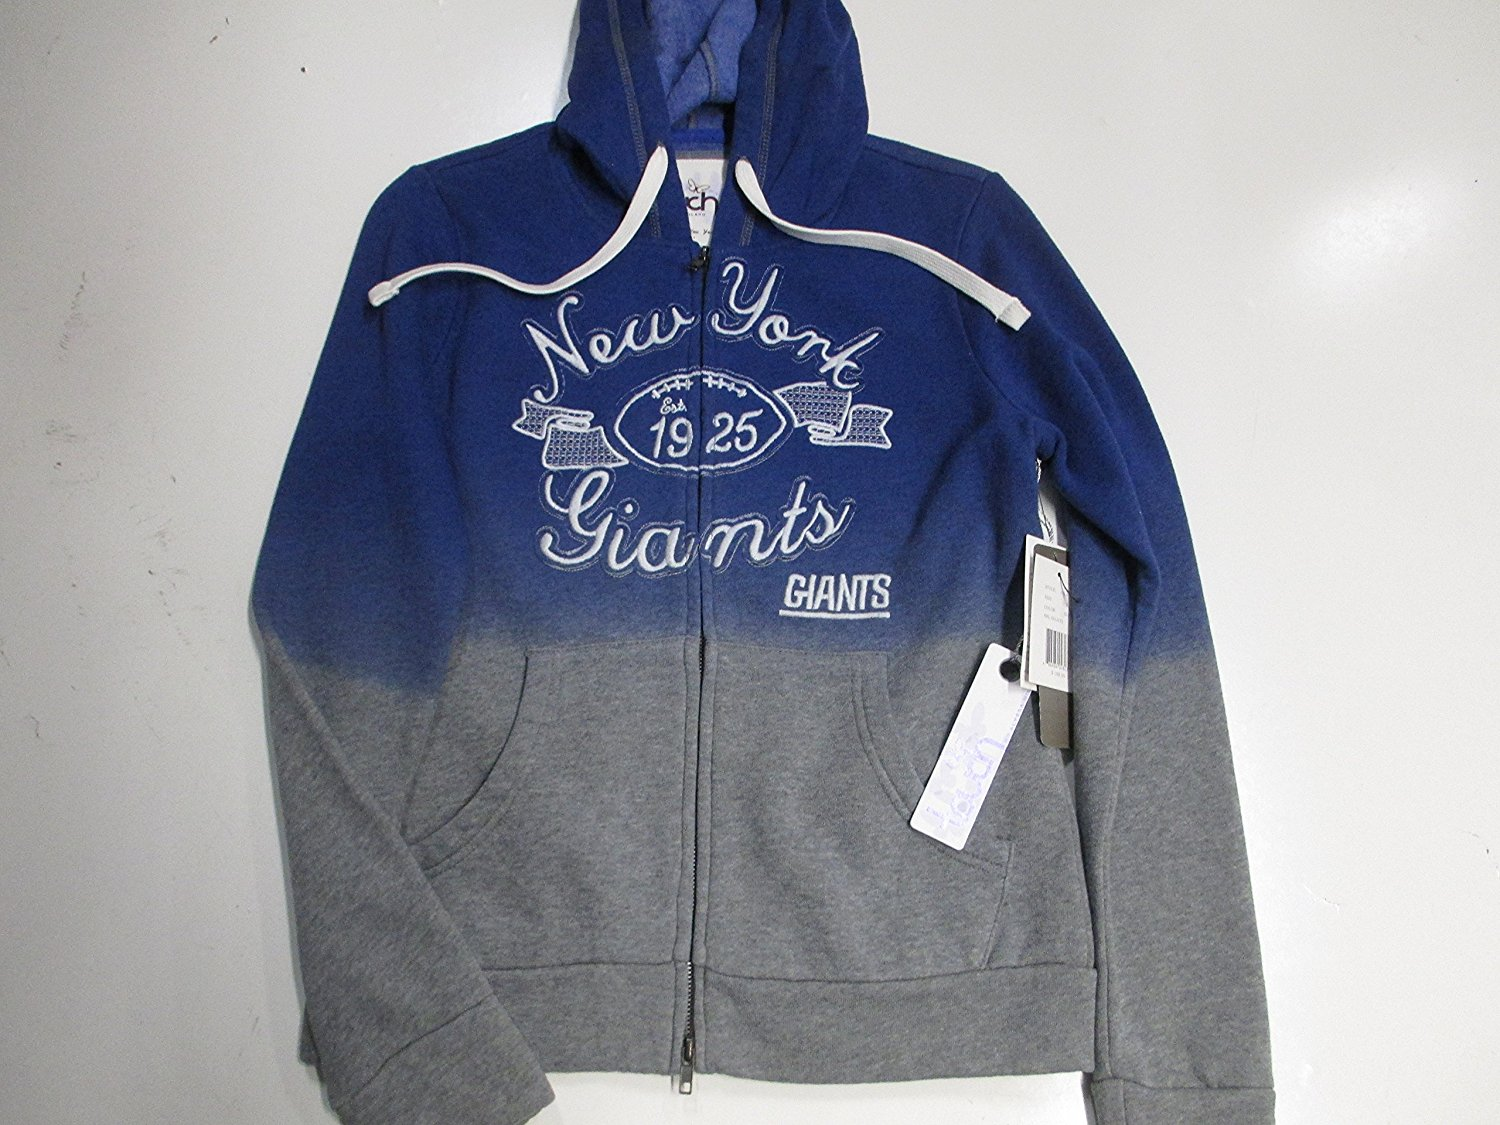 29d63c768 Get Quotations · New York Giants Womens Small and Medium Touch by Alyssa  Milano Full Zip Embroidered Hooded Sweatshirt